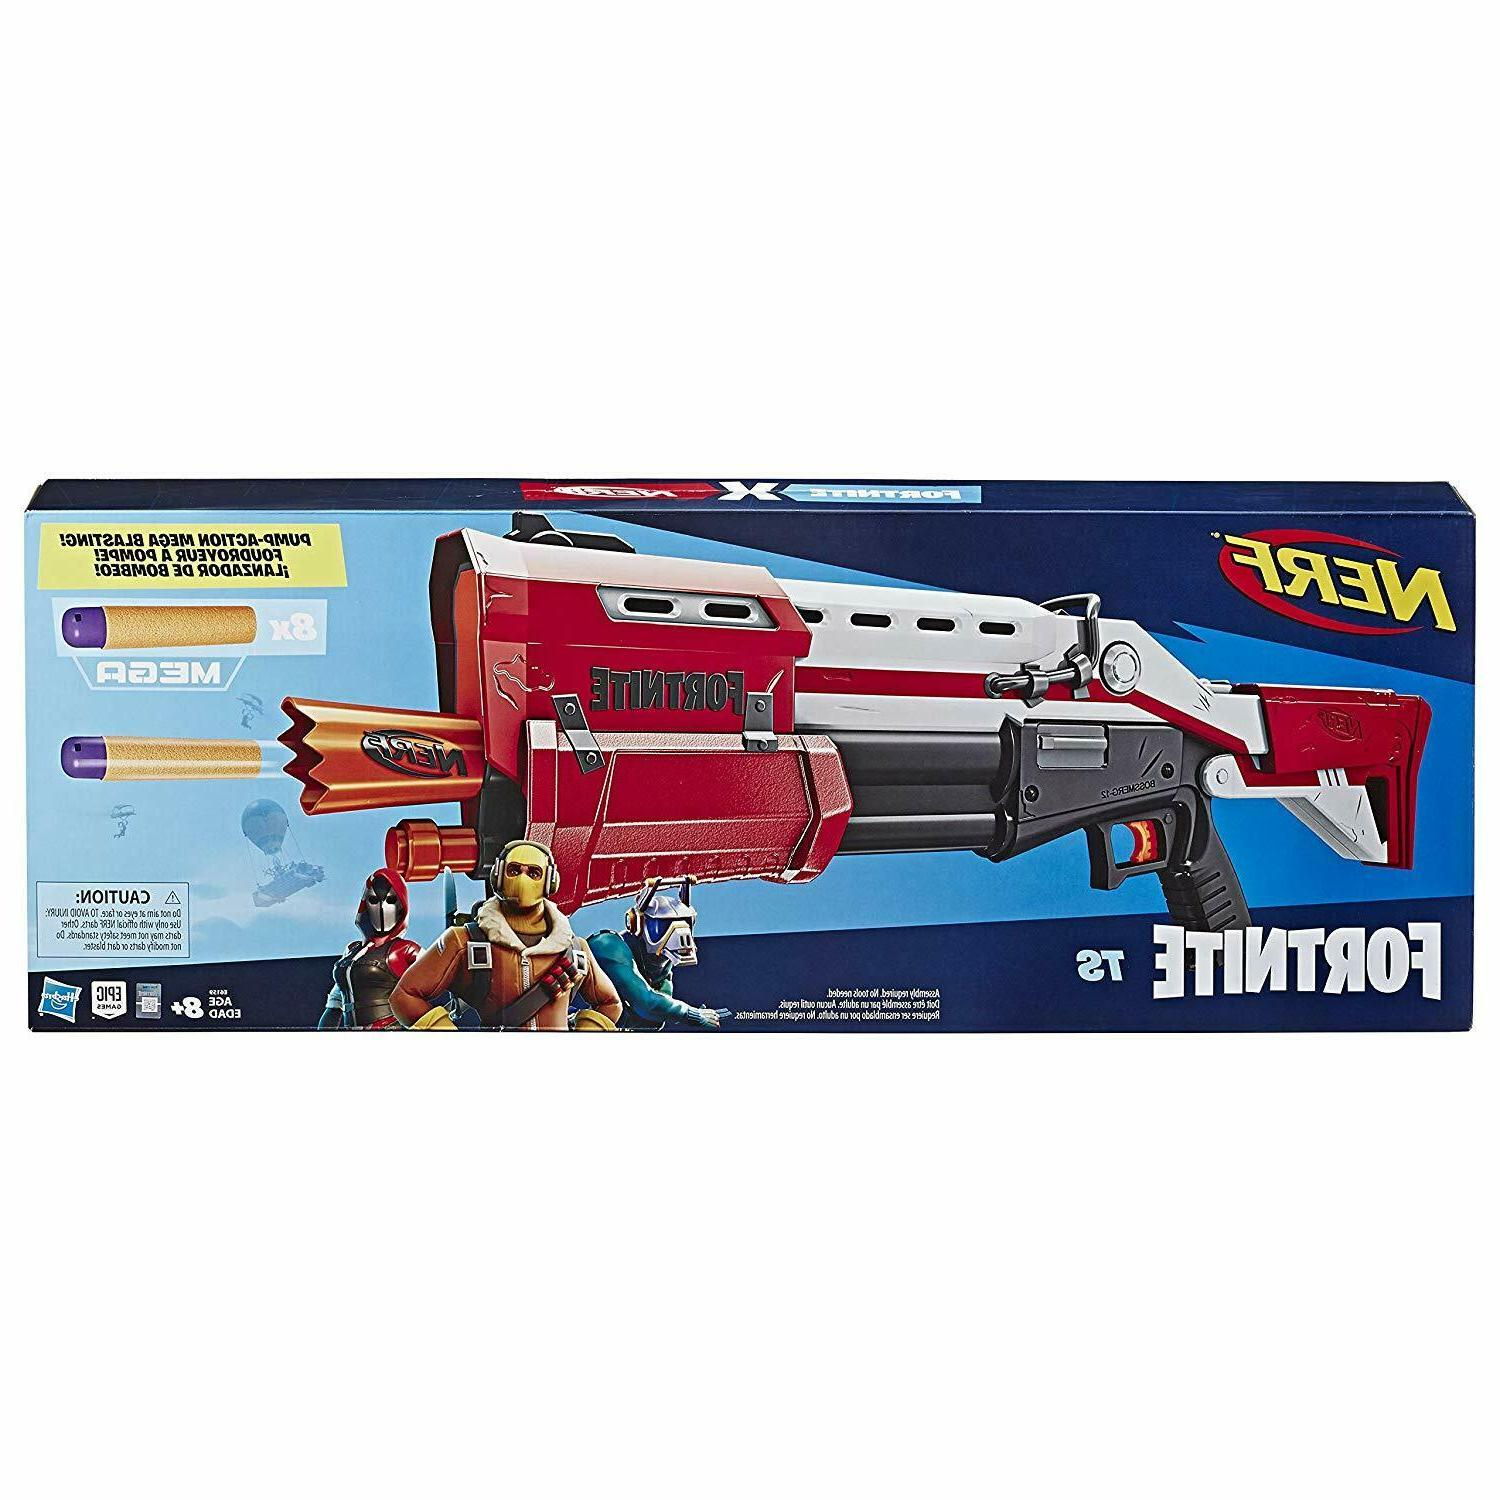 Fortnite Nerf Guns Boys Guns For Girls Fortnite